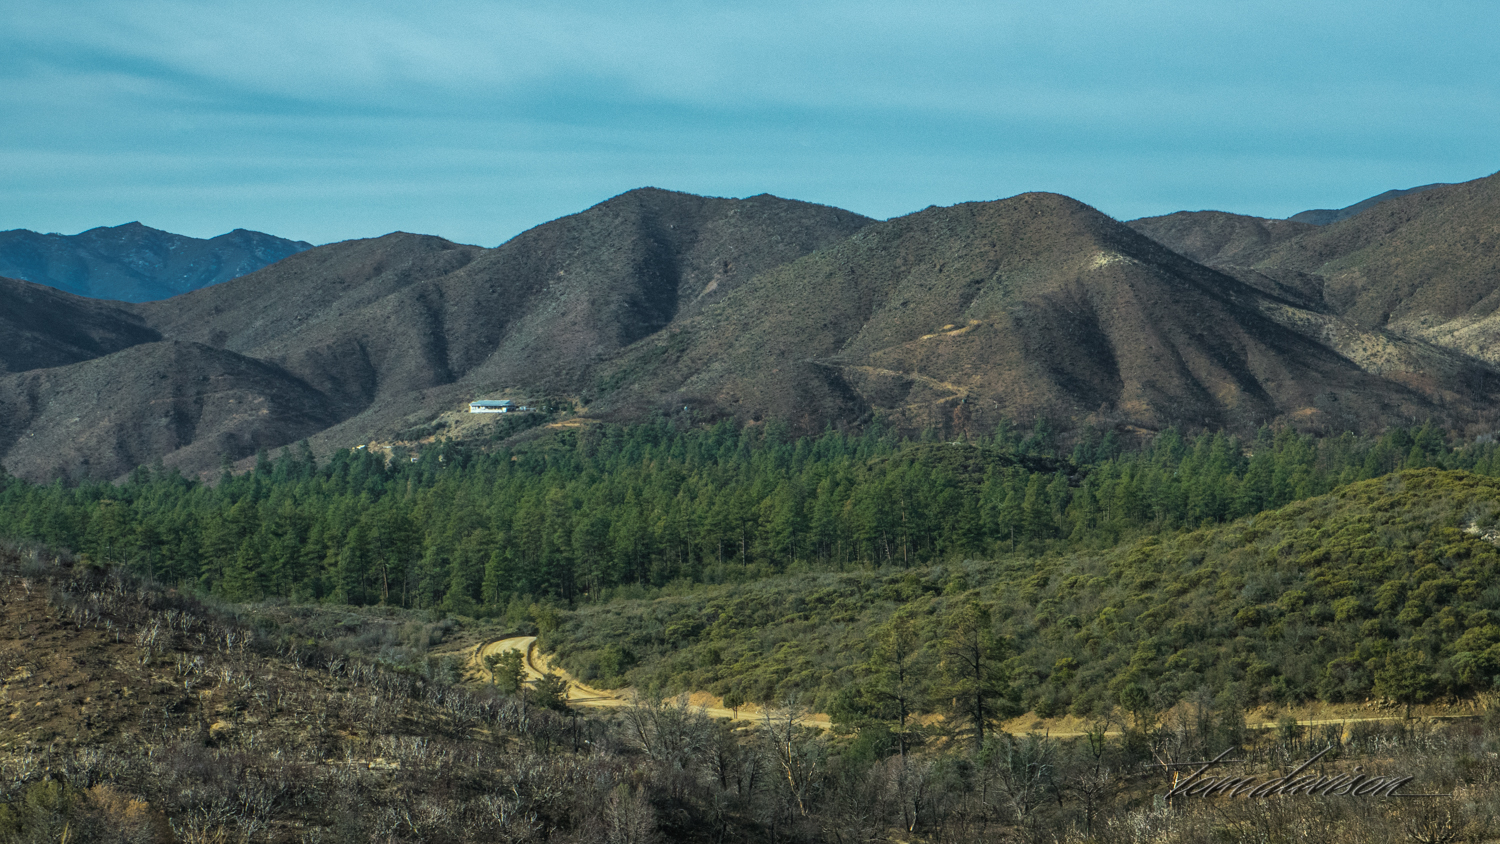 This one valley seemed to be spared from the burn. It is a small community and probably got some very important fire fighting protection. It does show the vegetation that probably covered a much larger area before the fire.